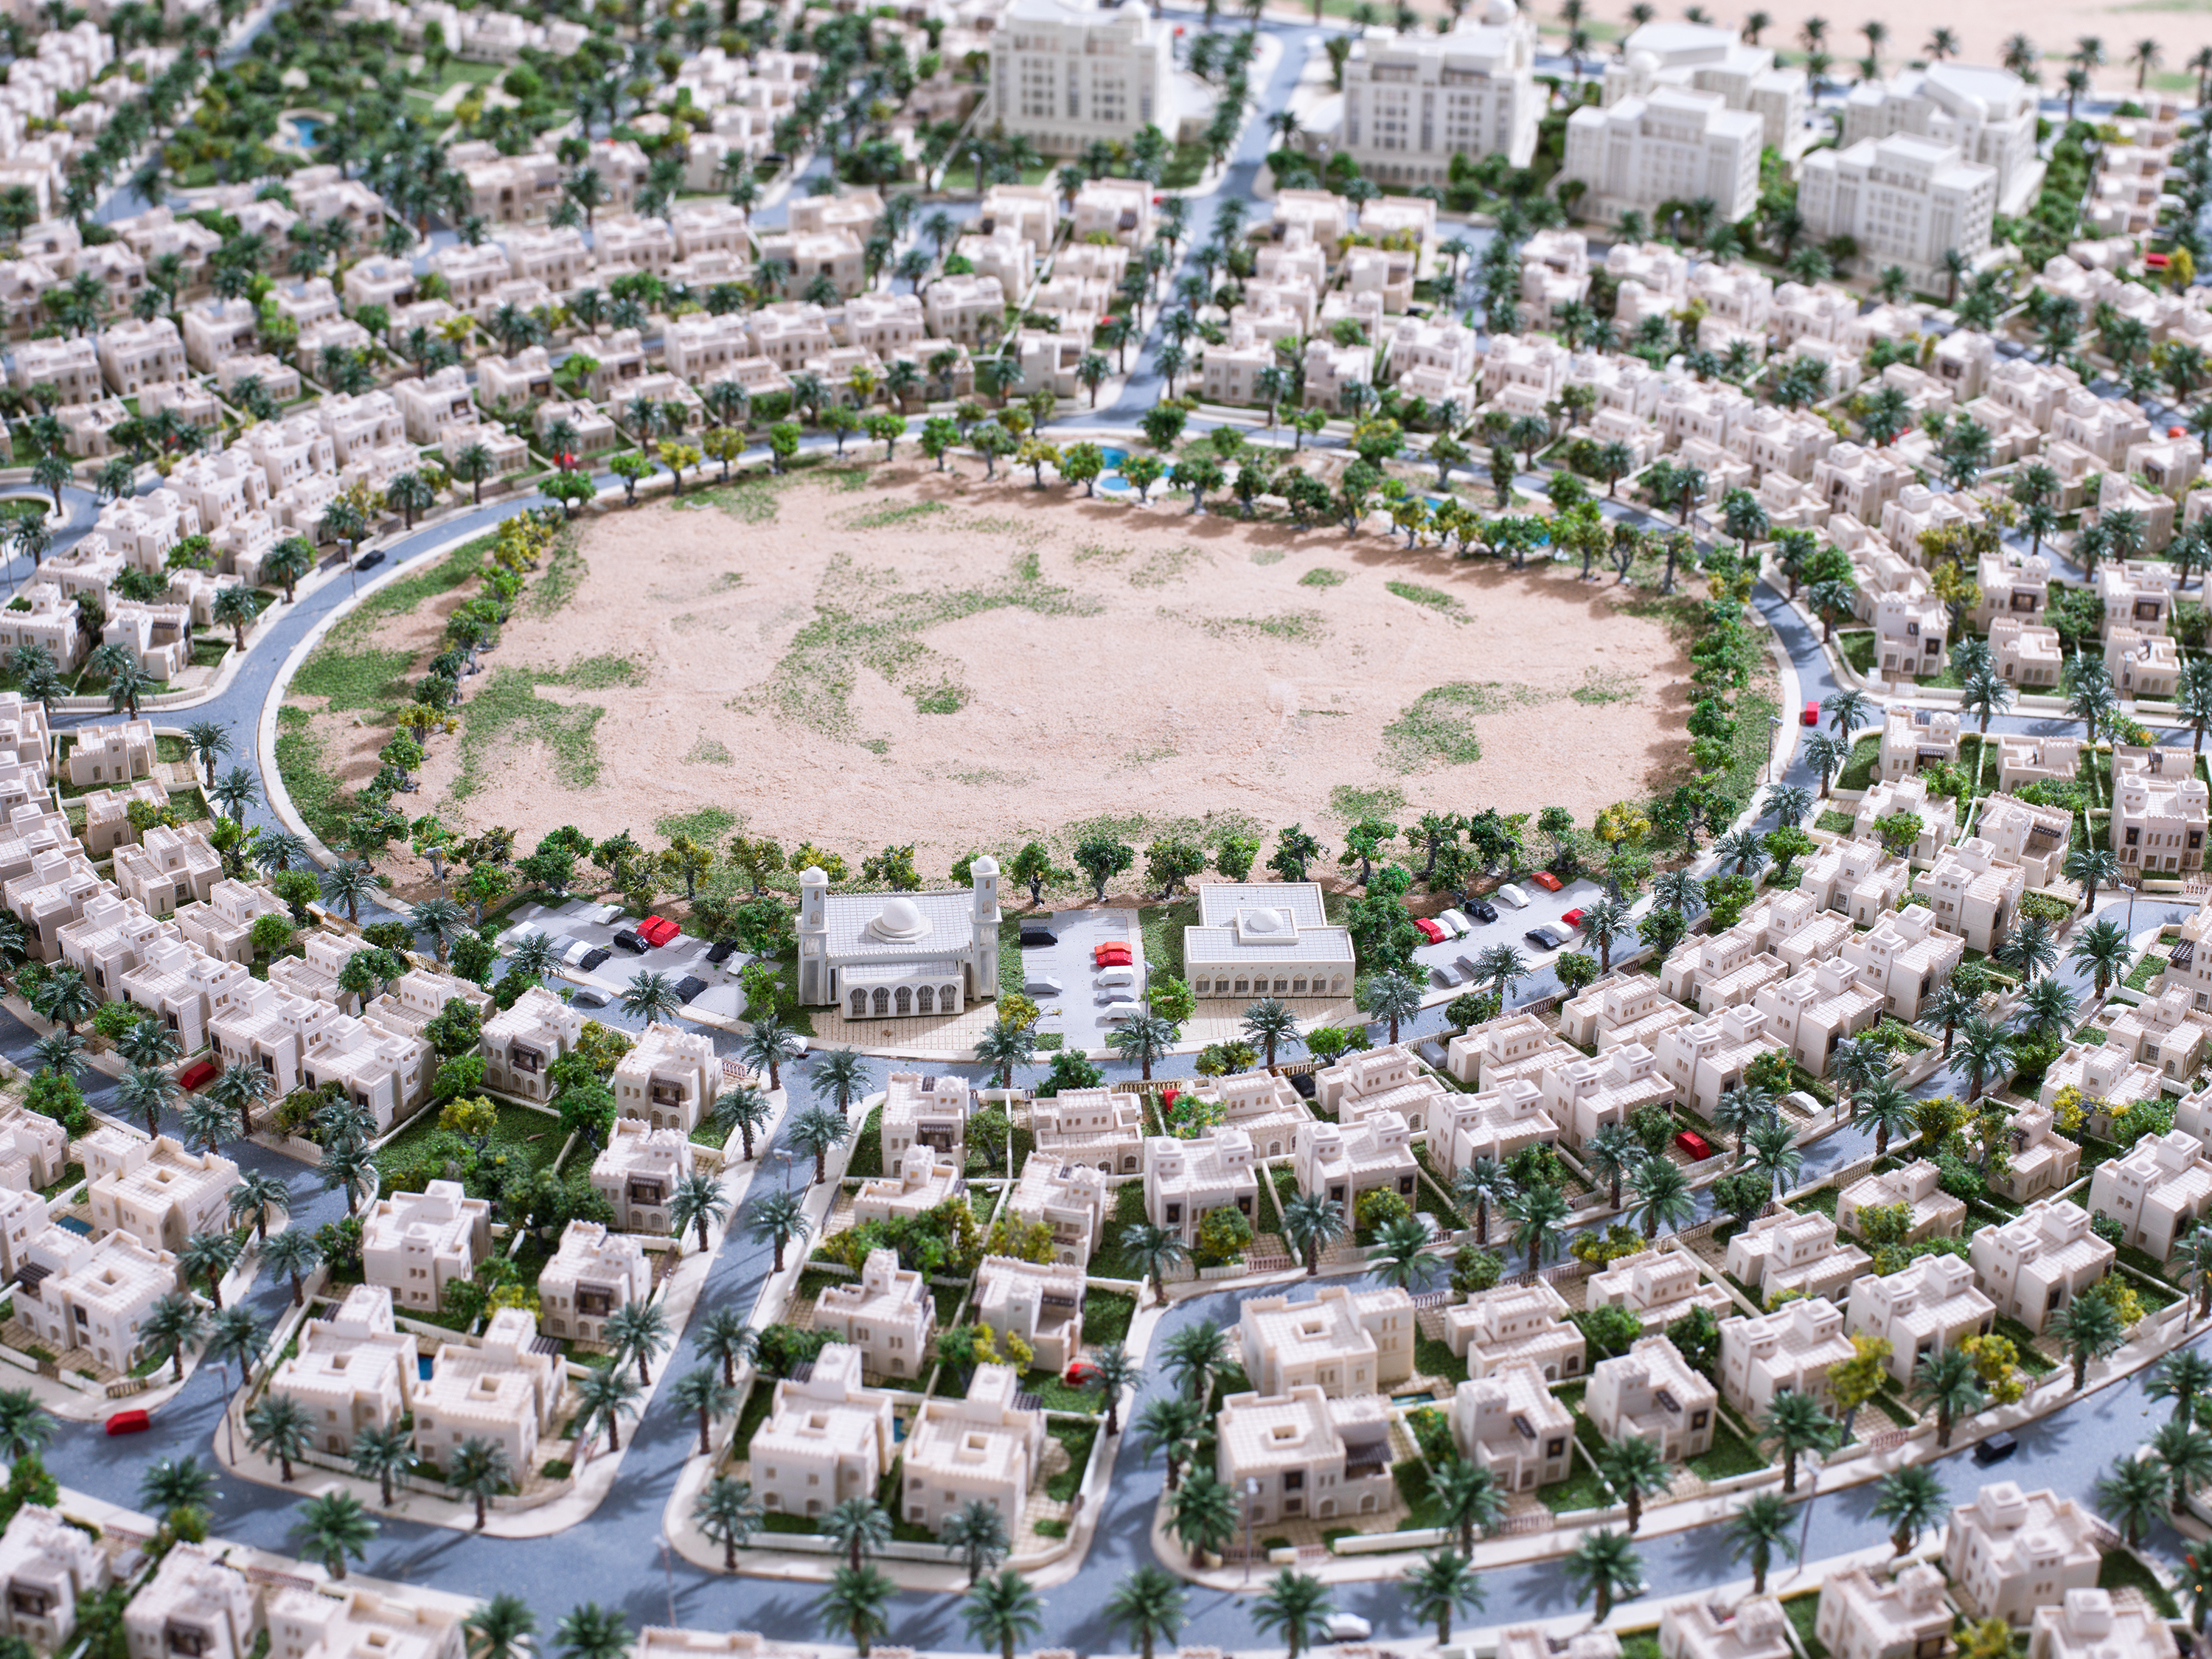 Real estate market shows signs of recovery: Alargan chief